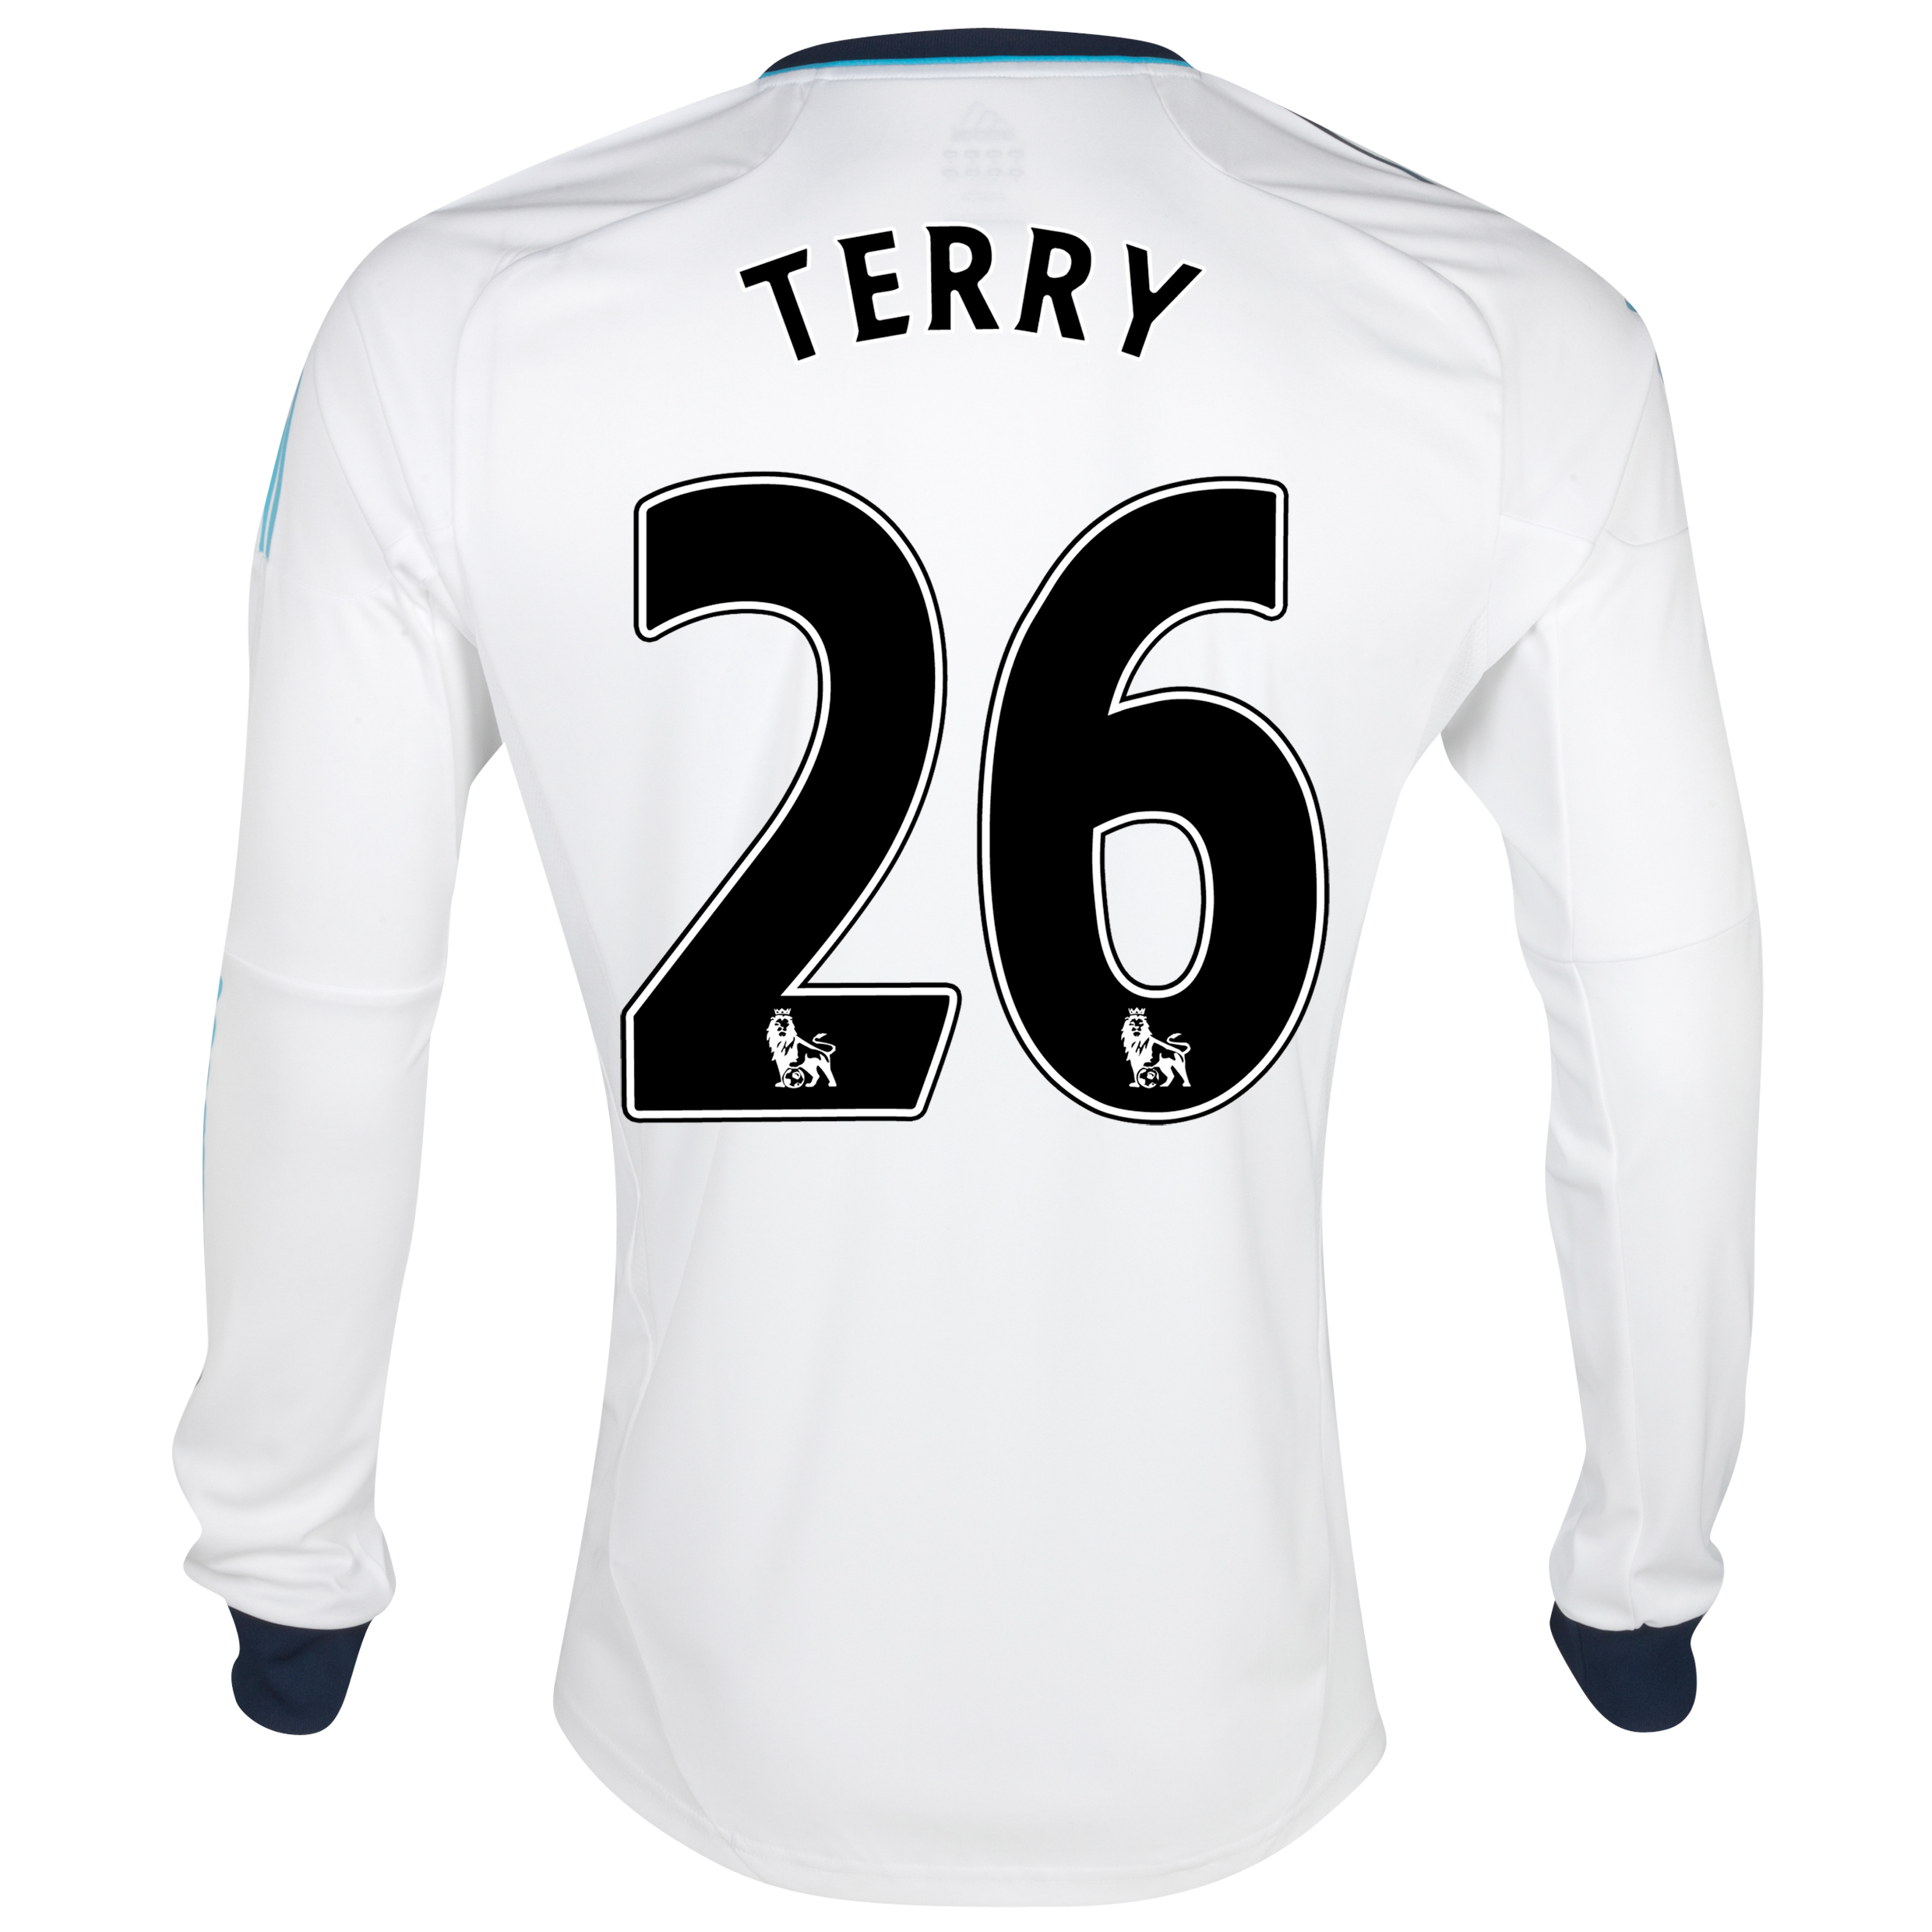 Chelsea Away Shirt 2012/13 - Long Sleeved  - Youths with Terry 26 printing